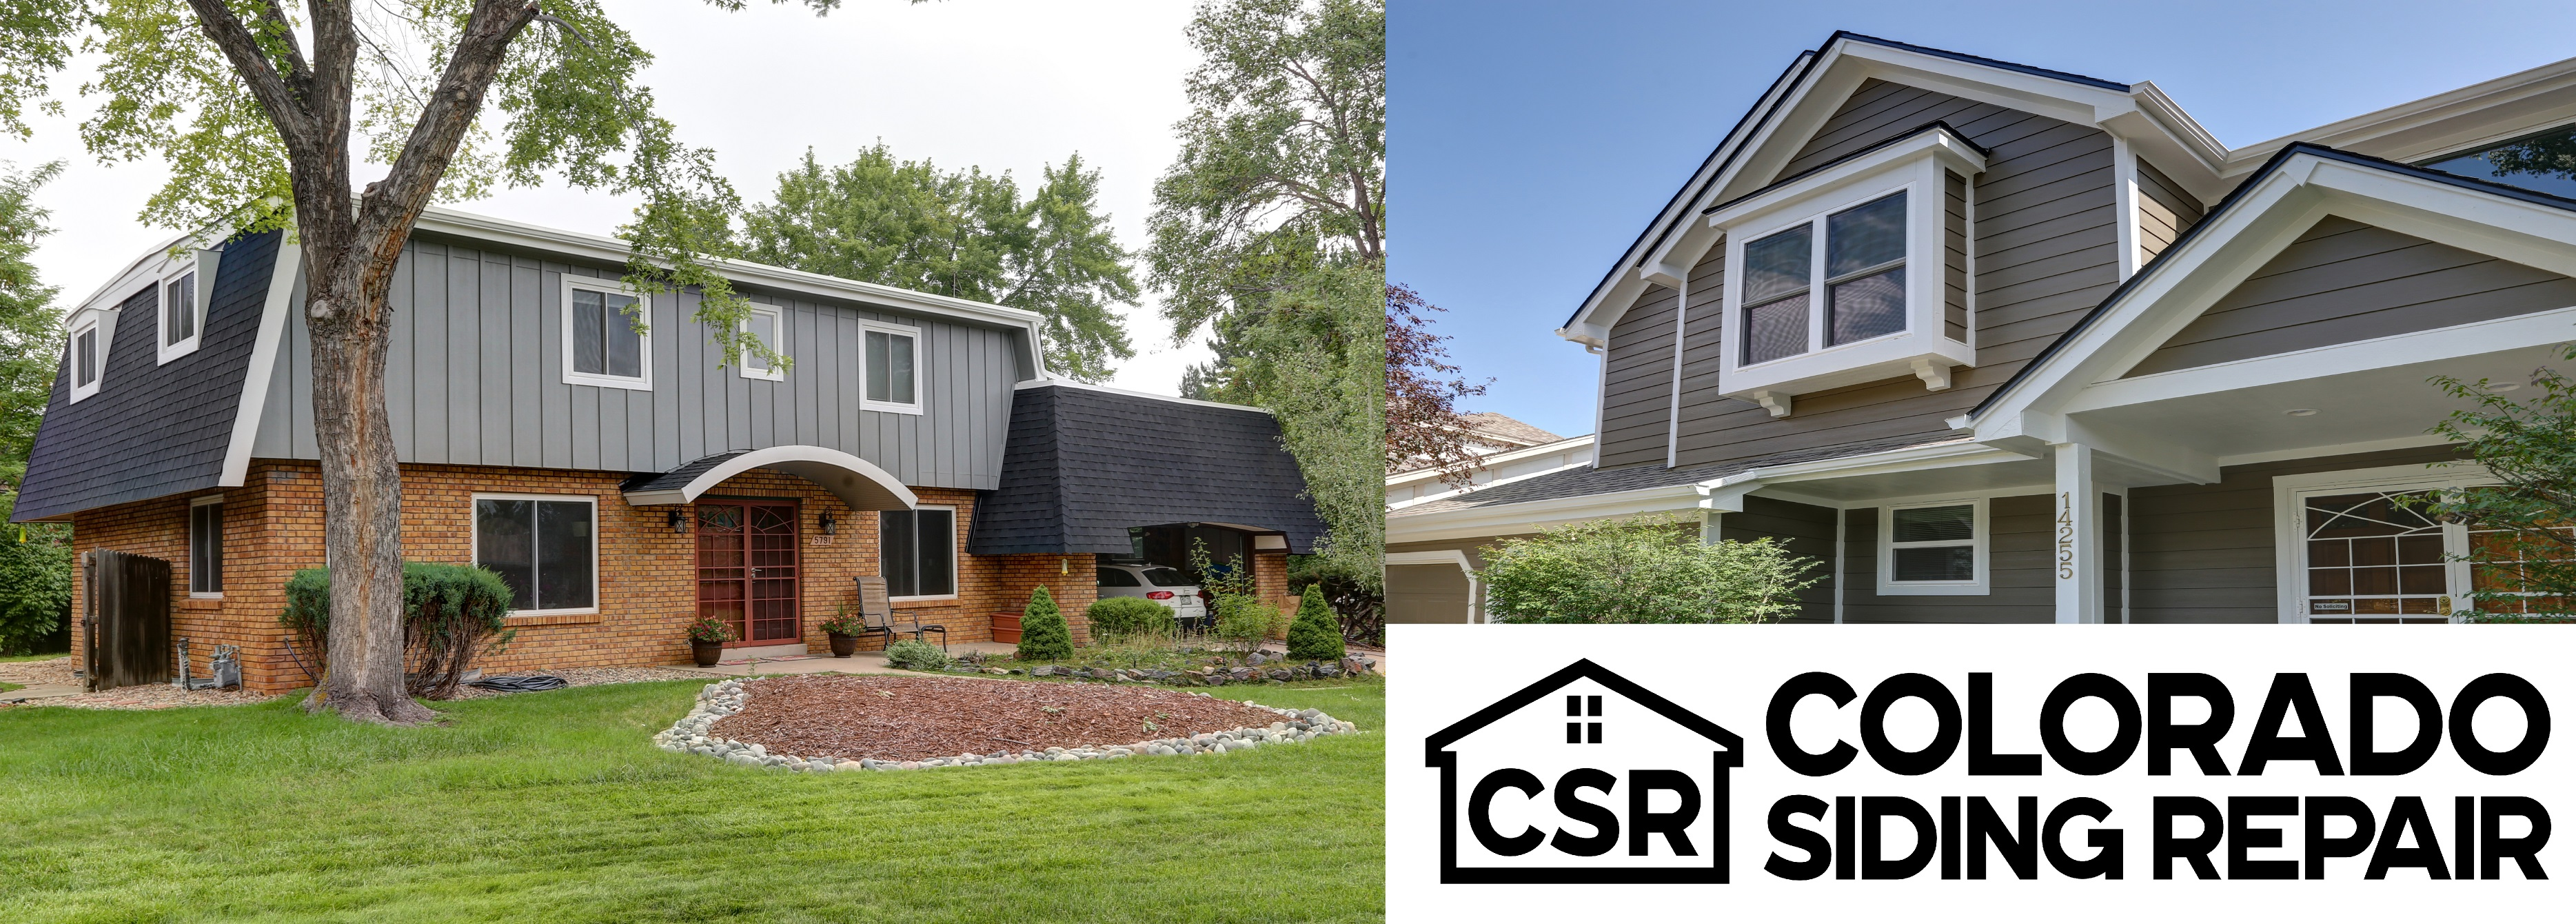 Colorado Siding Repair reviews | Siding at 2514 Champa St - Denver CO